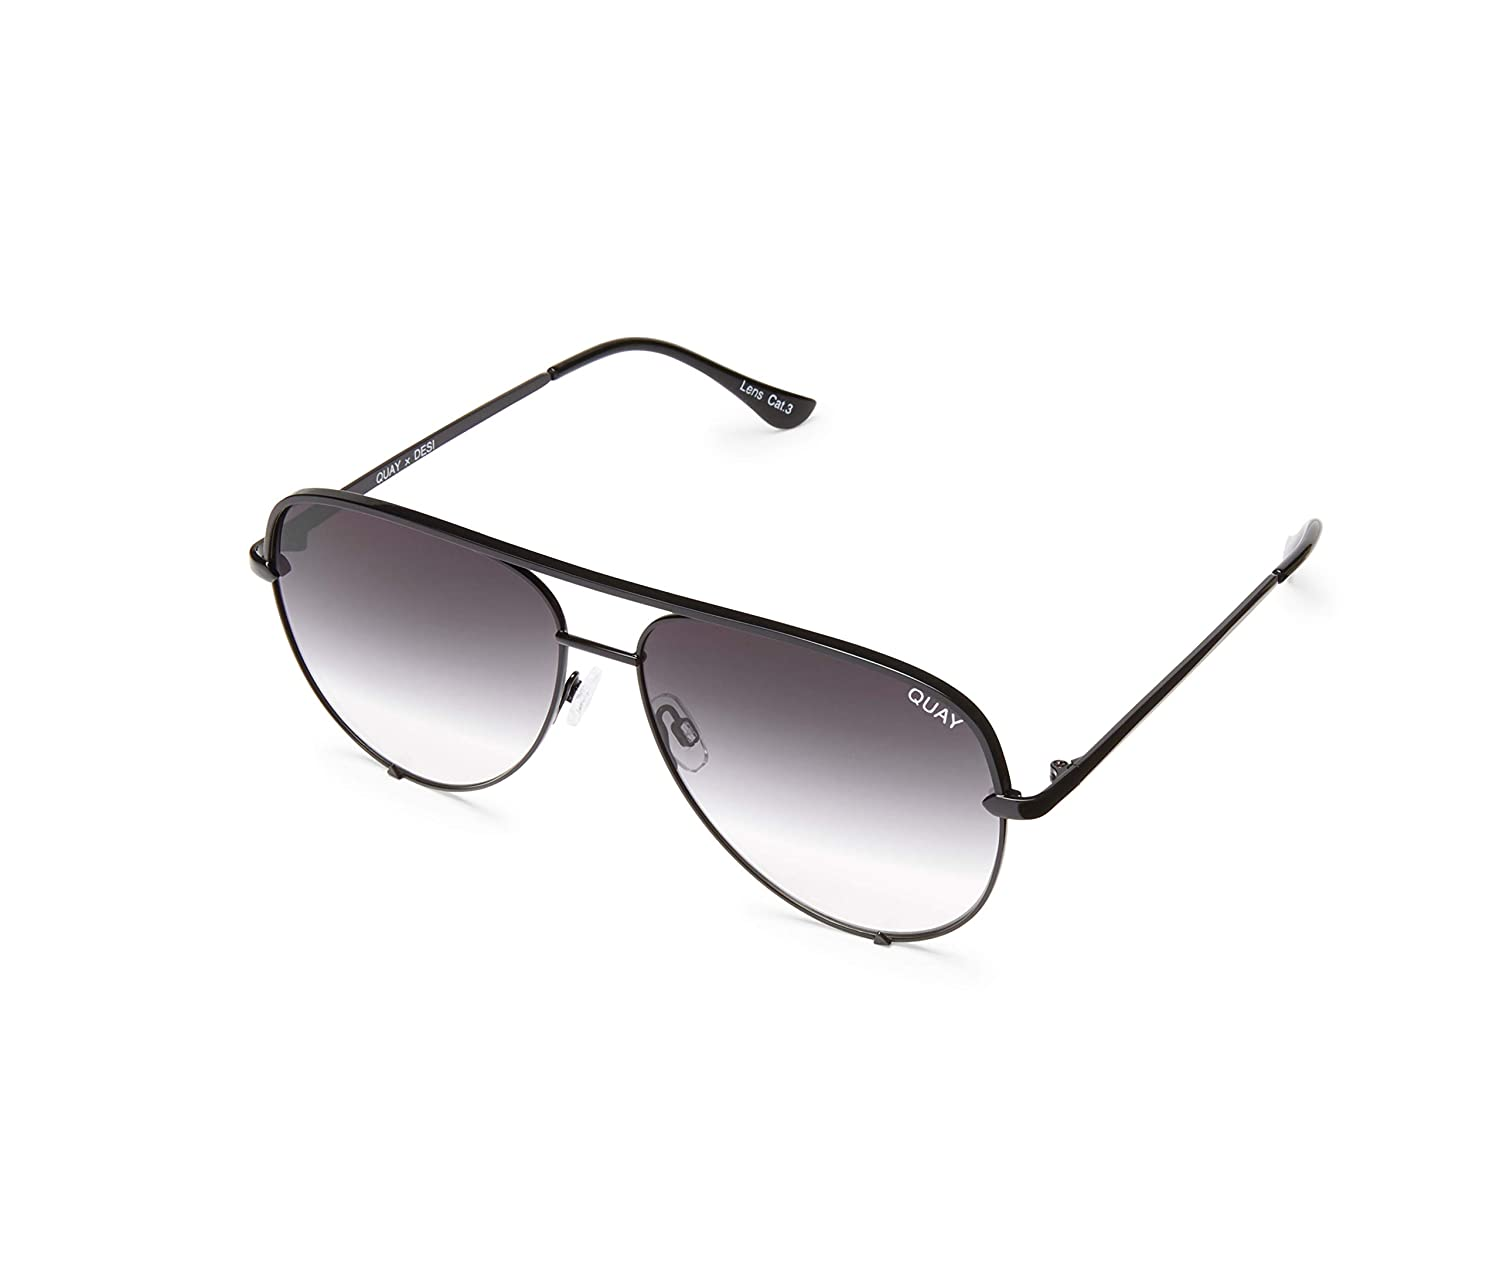 a4045e4004 Amazon.com  Quay Australia HIGH KEY Men s and Women s Sunglasses Classic  Oversized Aviator - Black Fade  Quay  Clothing